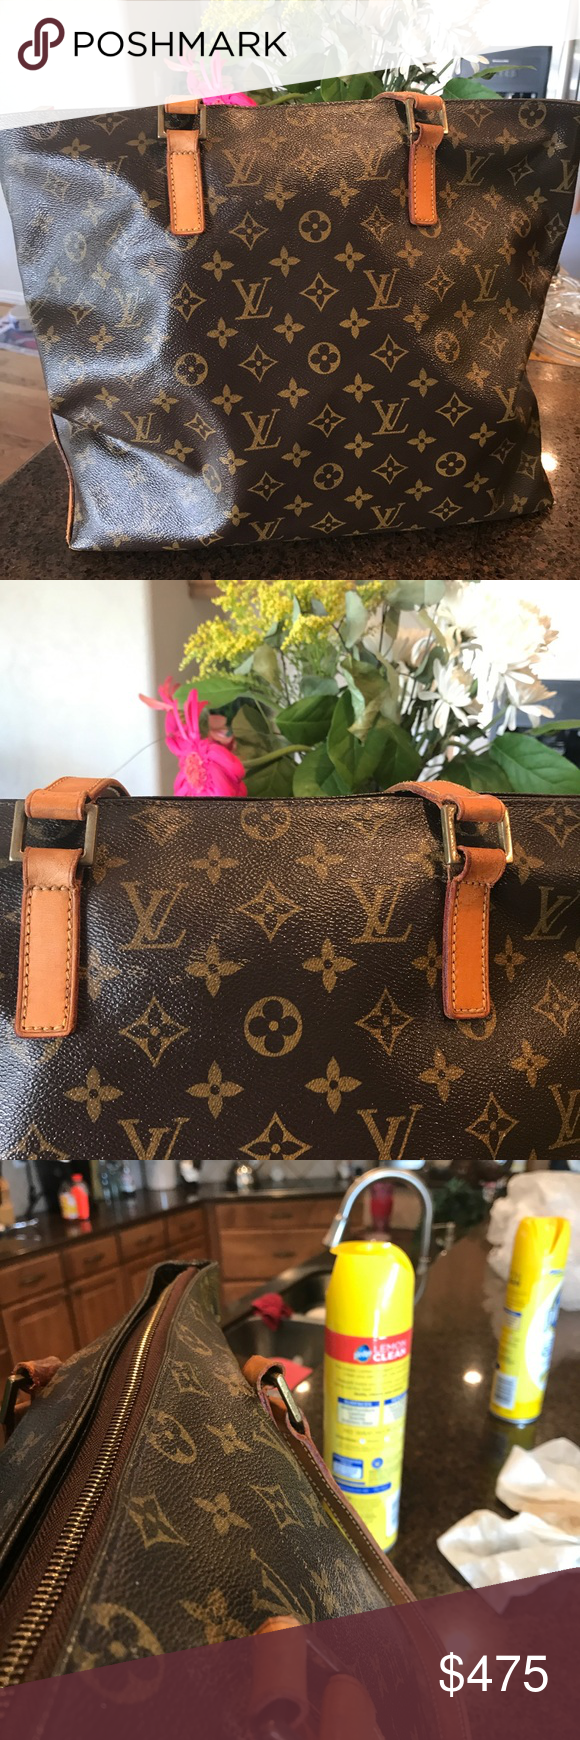 7edeab82 Beautiful vintage Louis Vuitton large Mezzo Tote **Vintage Item ...